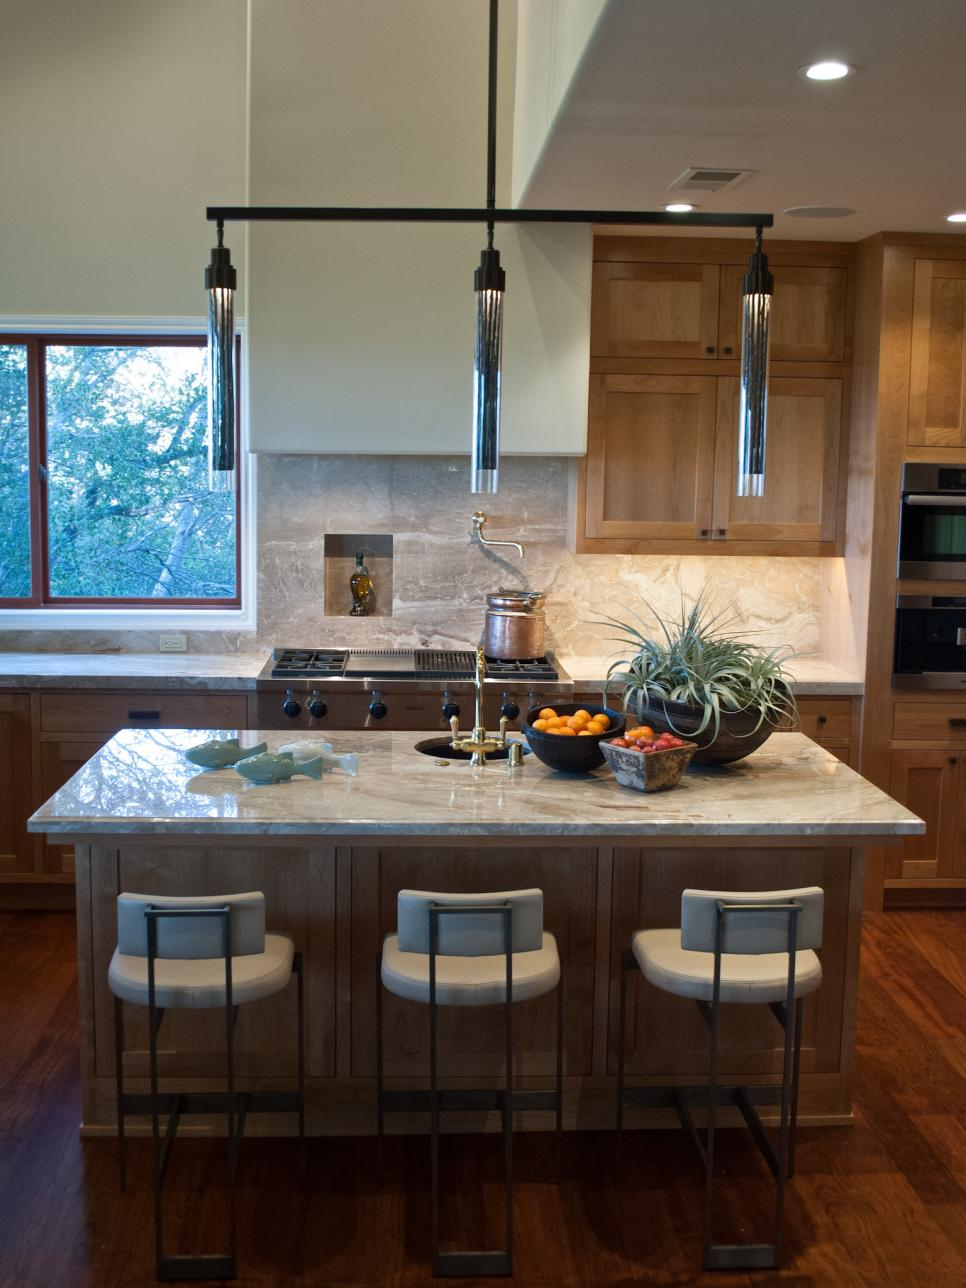 Contemporary Kitchen With Natural Countertops and Wood ...